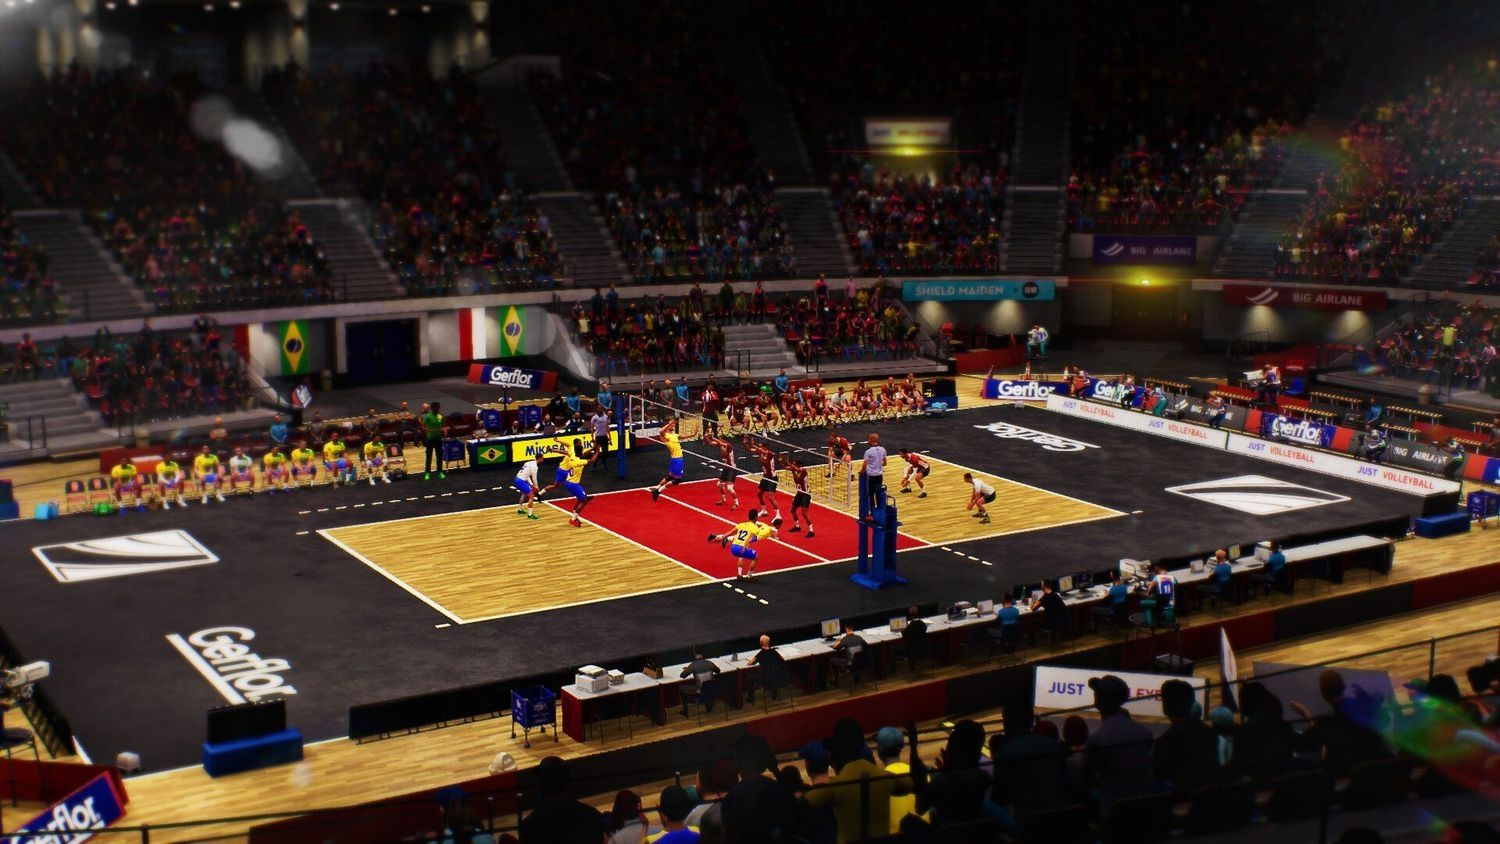 Spike Volleyball (PS4) - 6